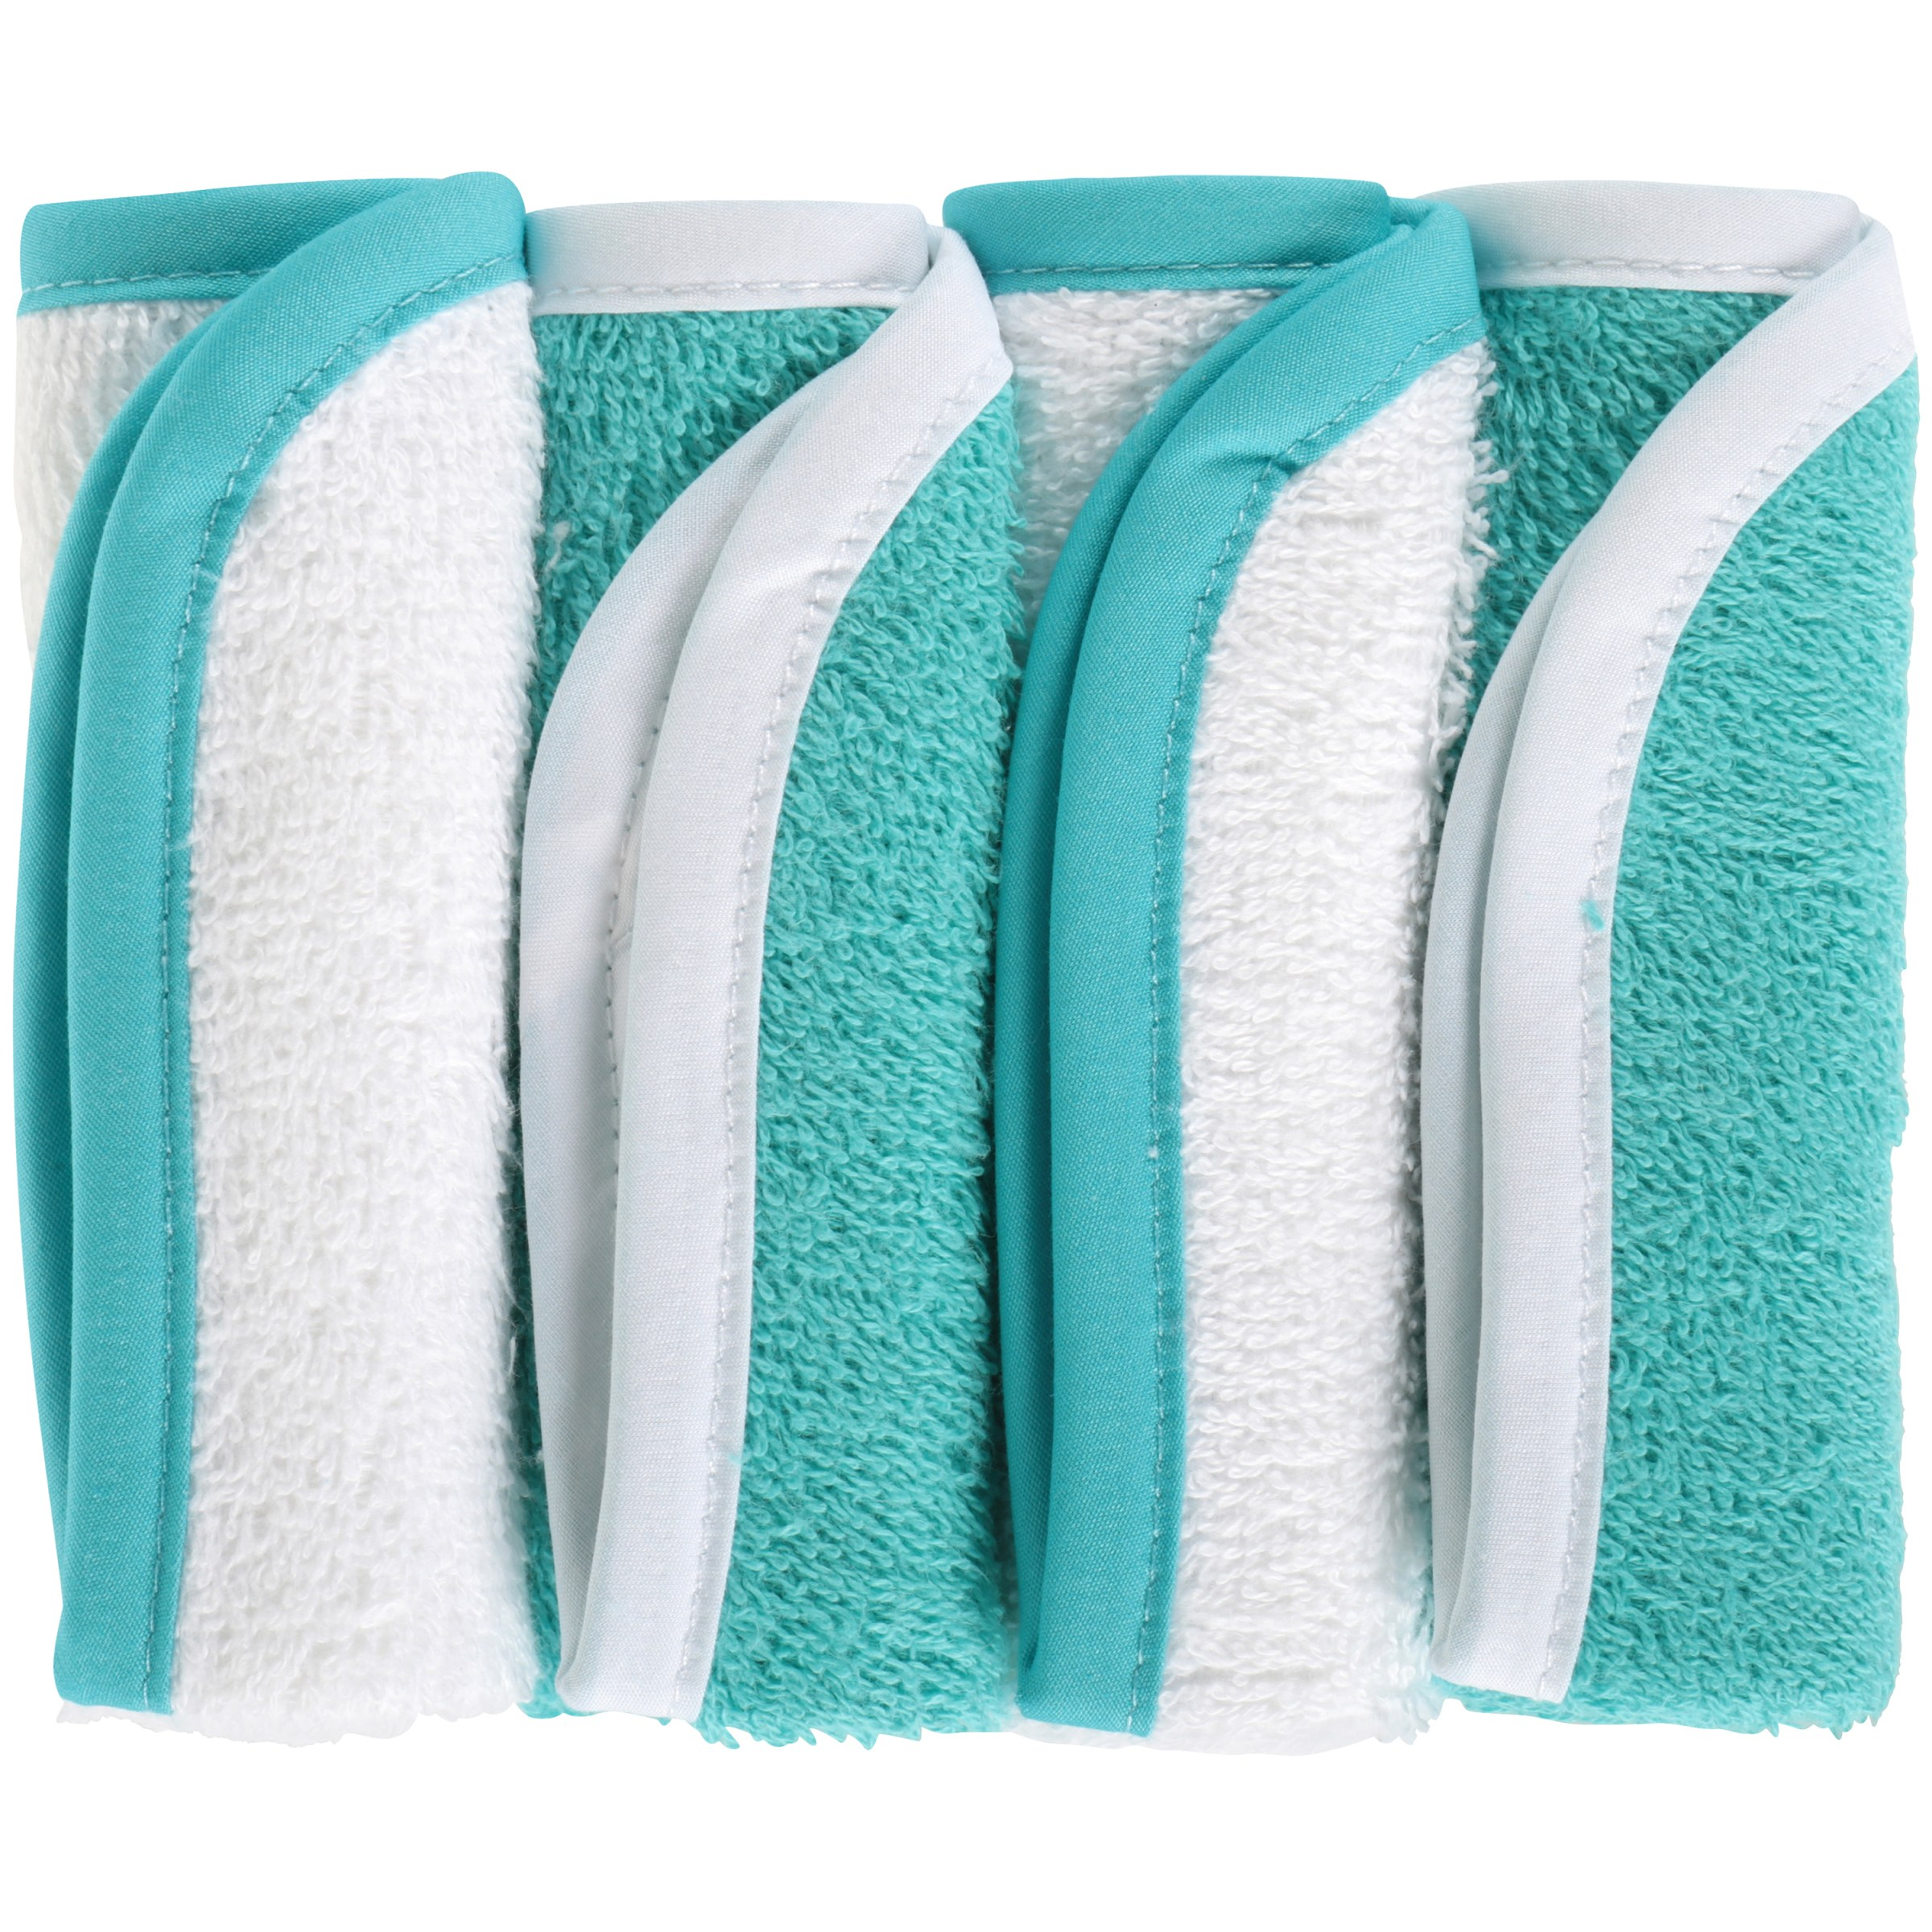 TL Care® Aqua Cotton Terry Washcloths 4 ct Pack